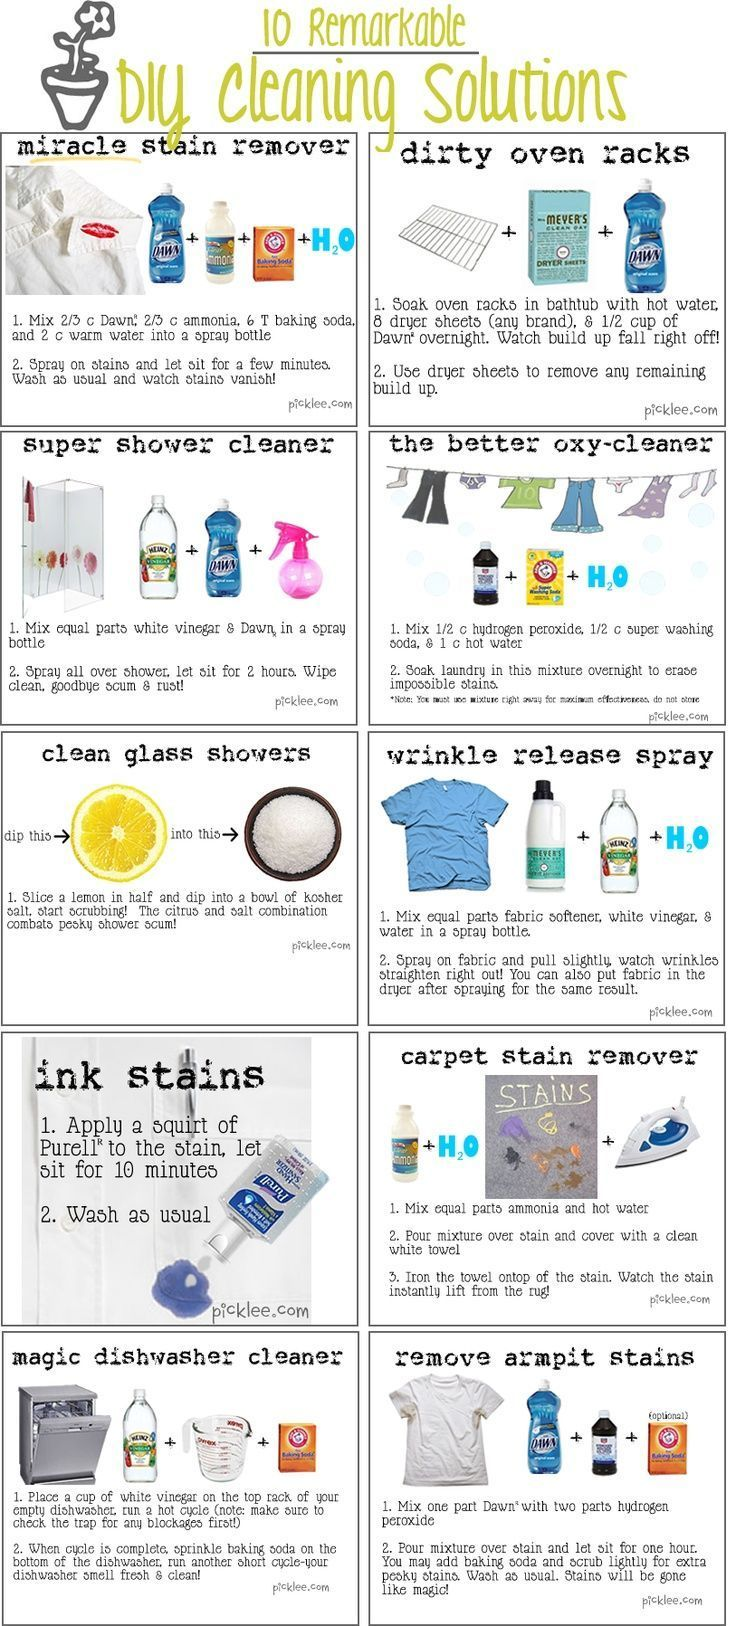 Make all purpose cleaners by pouring with equal parts into a spray bottle  Clean dirt off your computer and mouse with a little vinegar and a q tip  Clean your drains with vinegar and baking soda  Wipe away mildew  Clean and polish chrome and stainless steel  Use as a fruit wash-rinses away germs  Erase ballpoint-pen marks  Erase crayon marks from clothes  Remove stickers and price tags  Disinfect cutting boards  Restore wood paneling  Remove carpet stains  Keep car windows frost free…